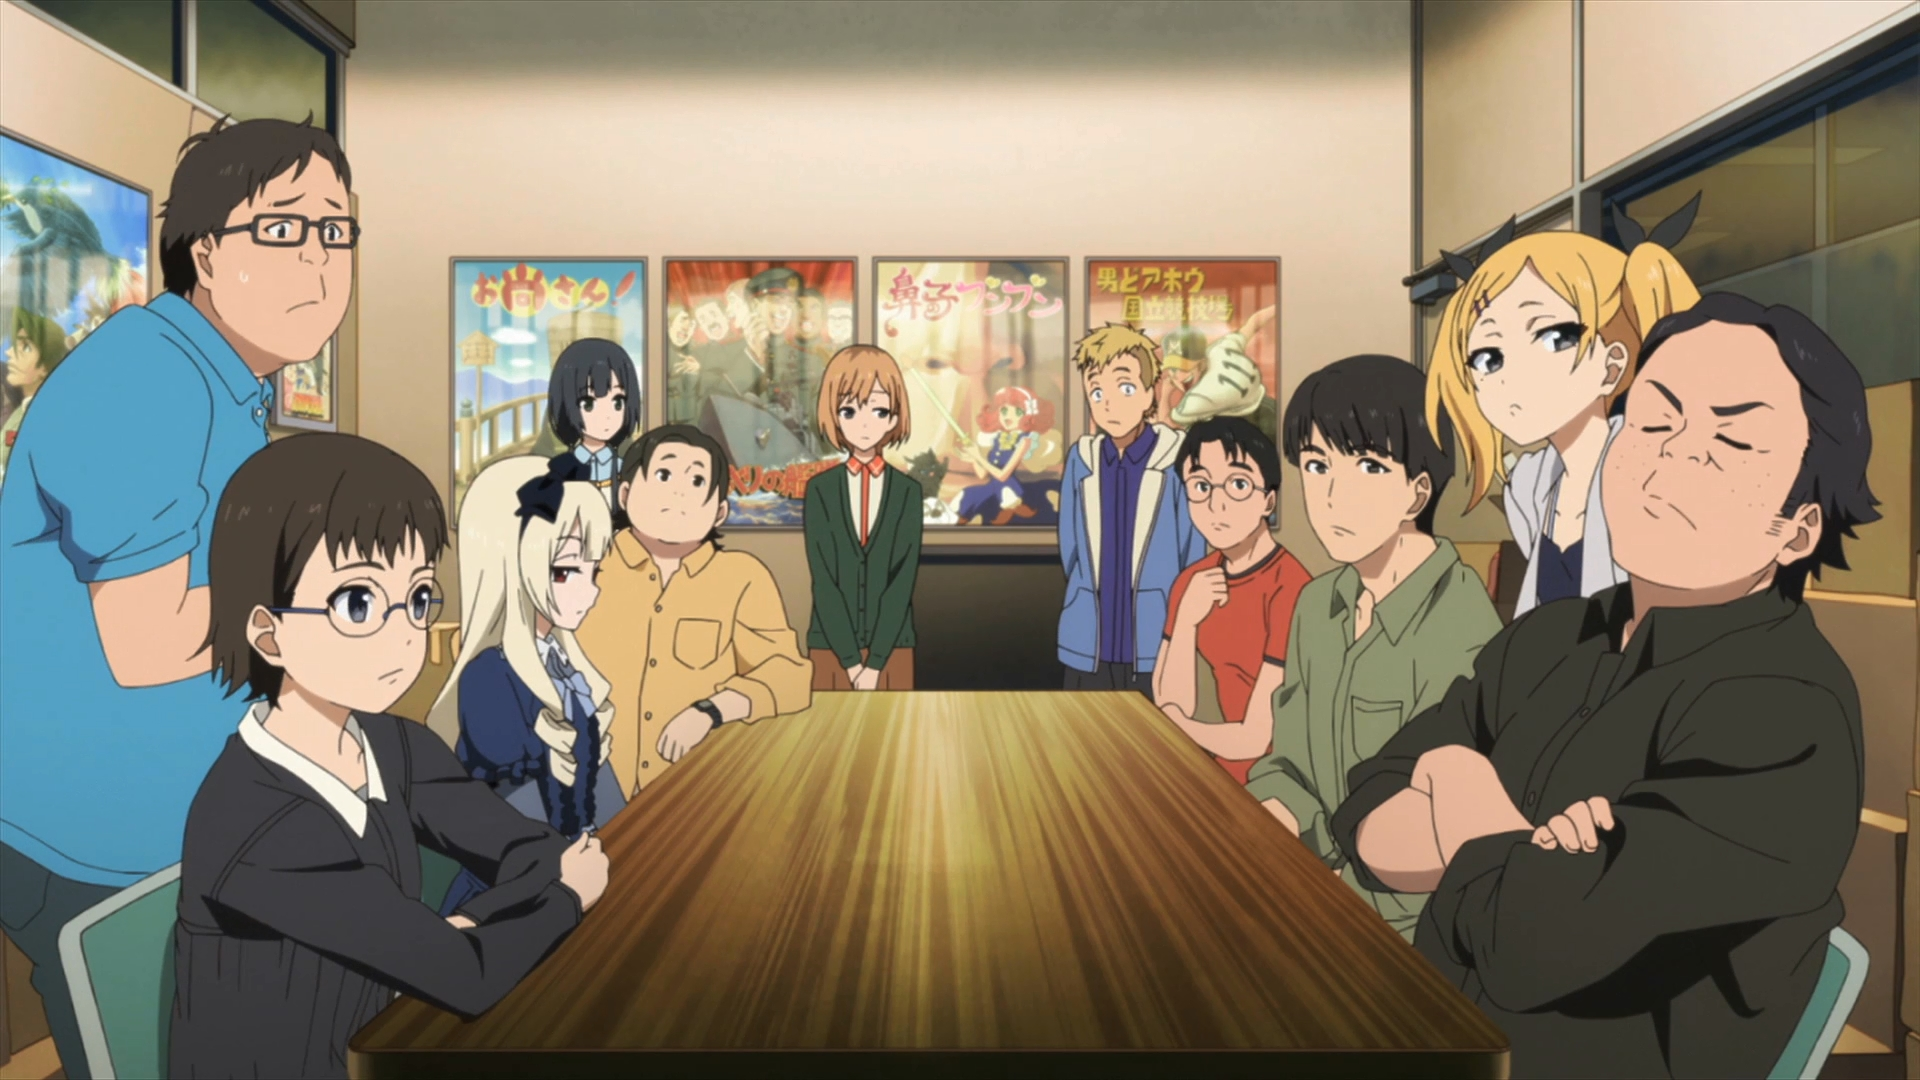 https://nefariousreviews.files.wordpress.com/2016/09/shirobako-anime-team.jpg